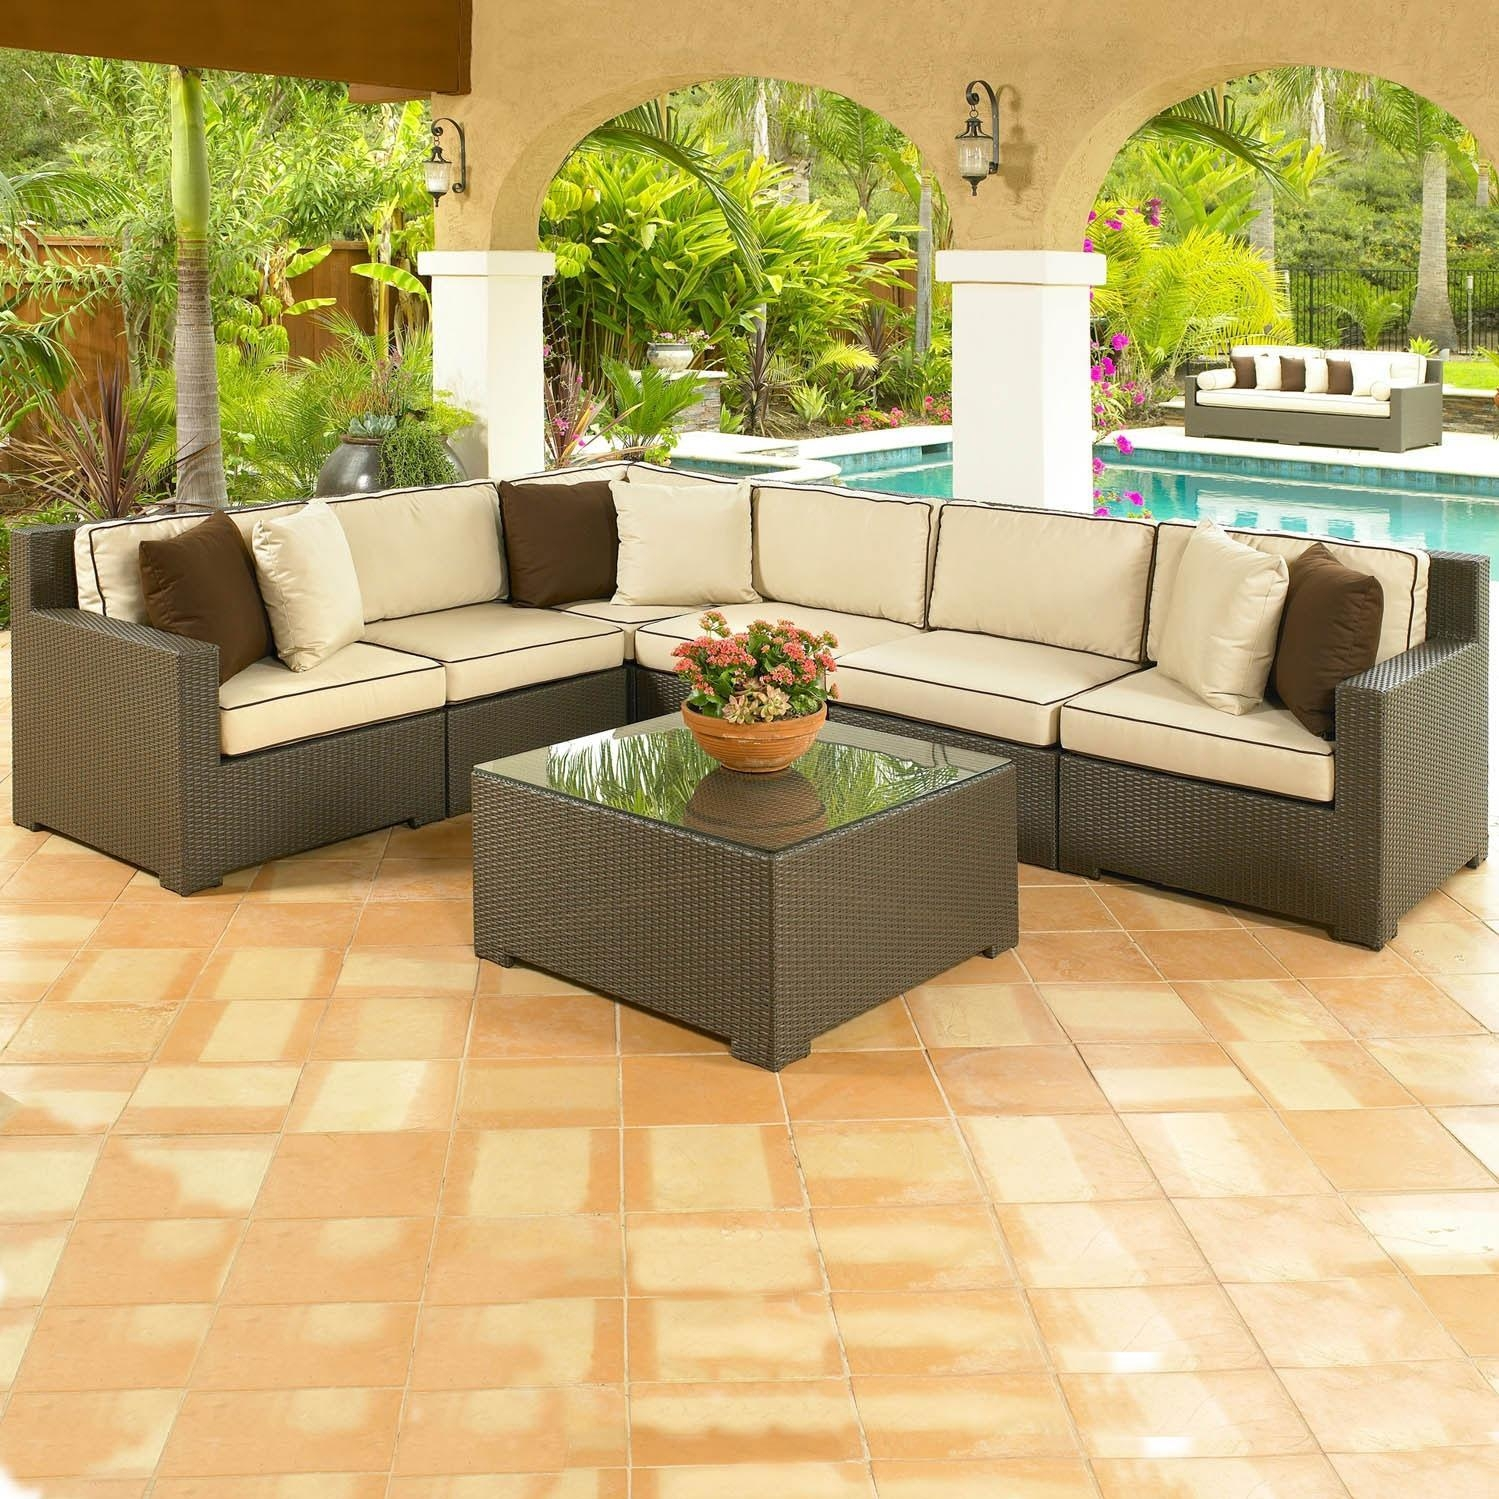 Appealing Outdoor Patio Furniture Sectional Design – Patio Regarding Cheap Outdoor Sectionals (Image 2 of 15)